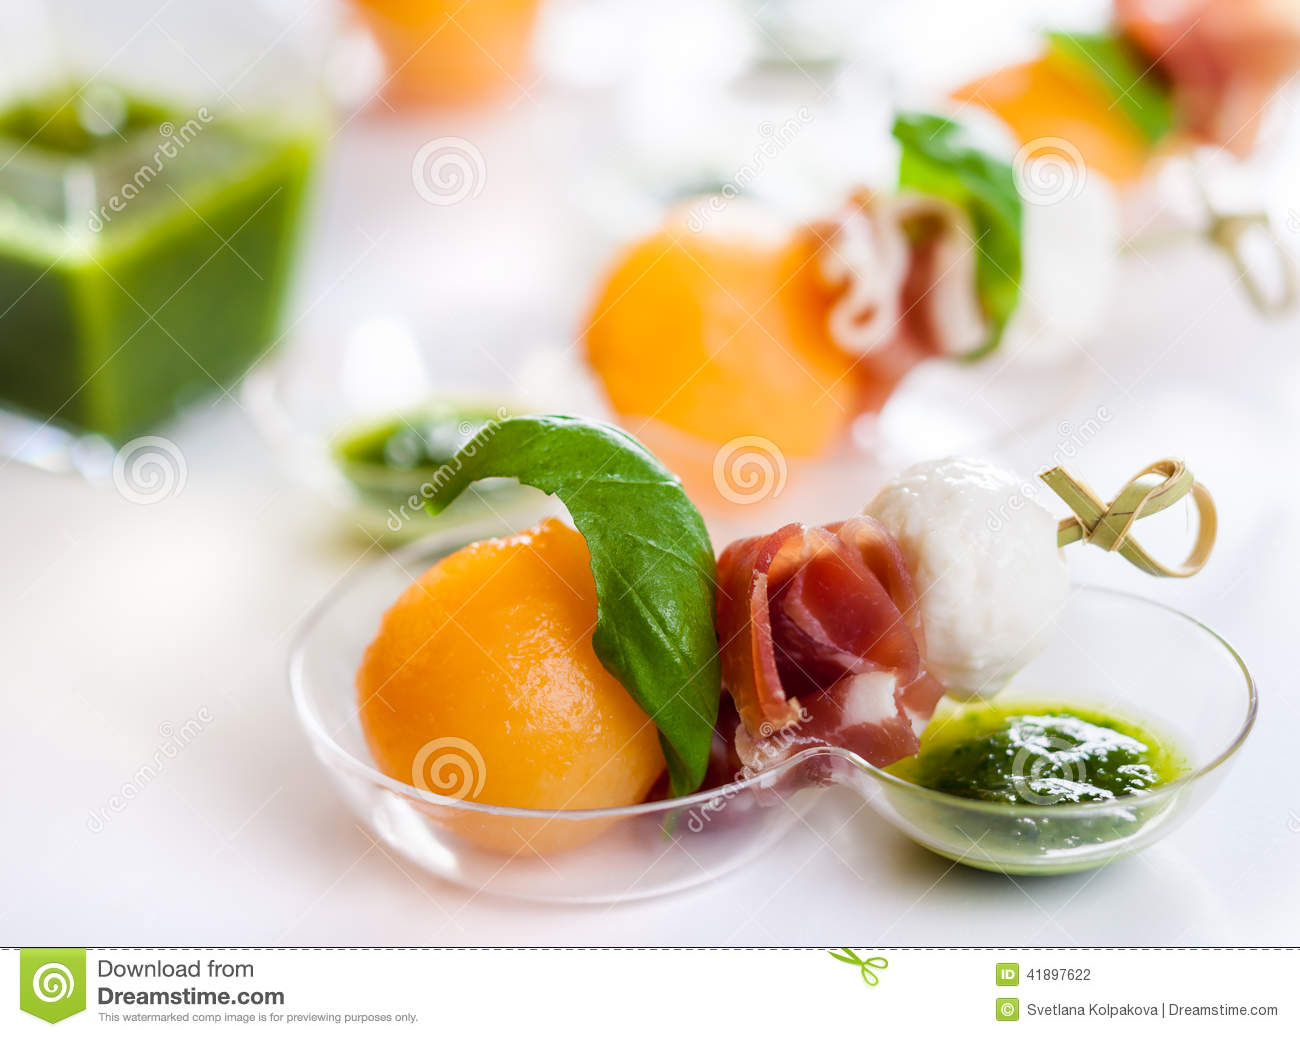 Melon mozzarella and prosciutto on skewers stock photo for Prosciutto and melon canape